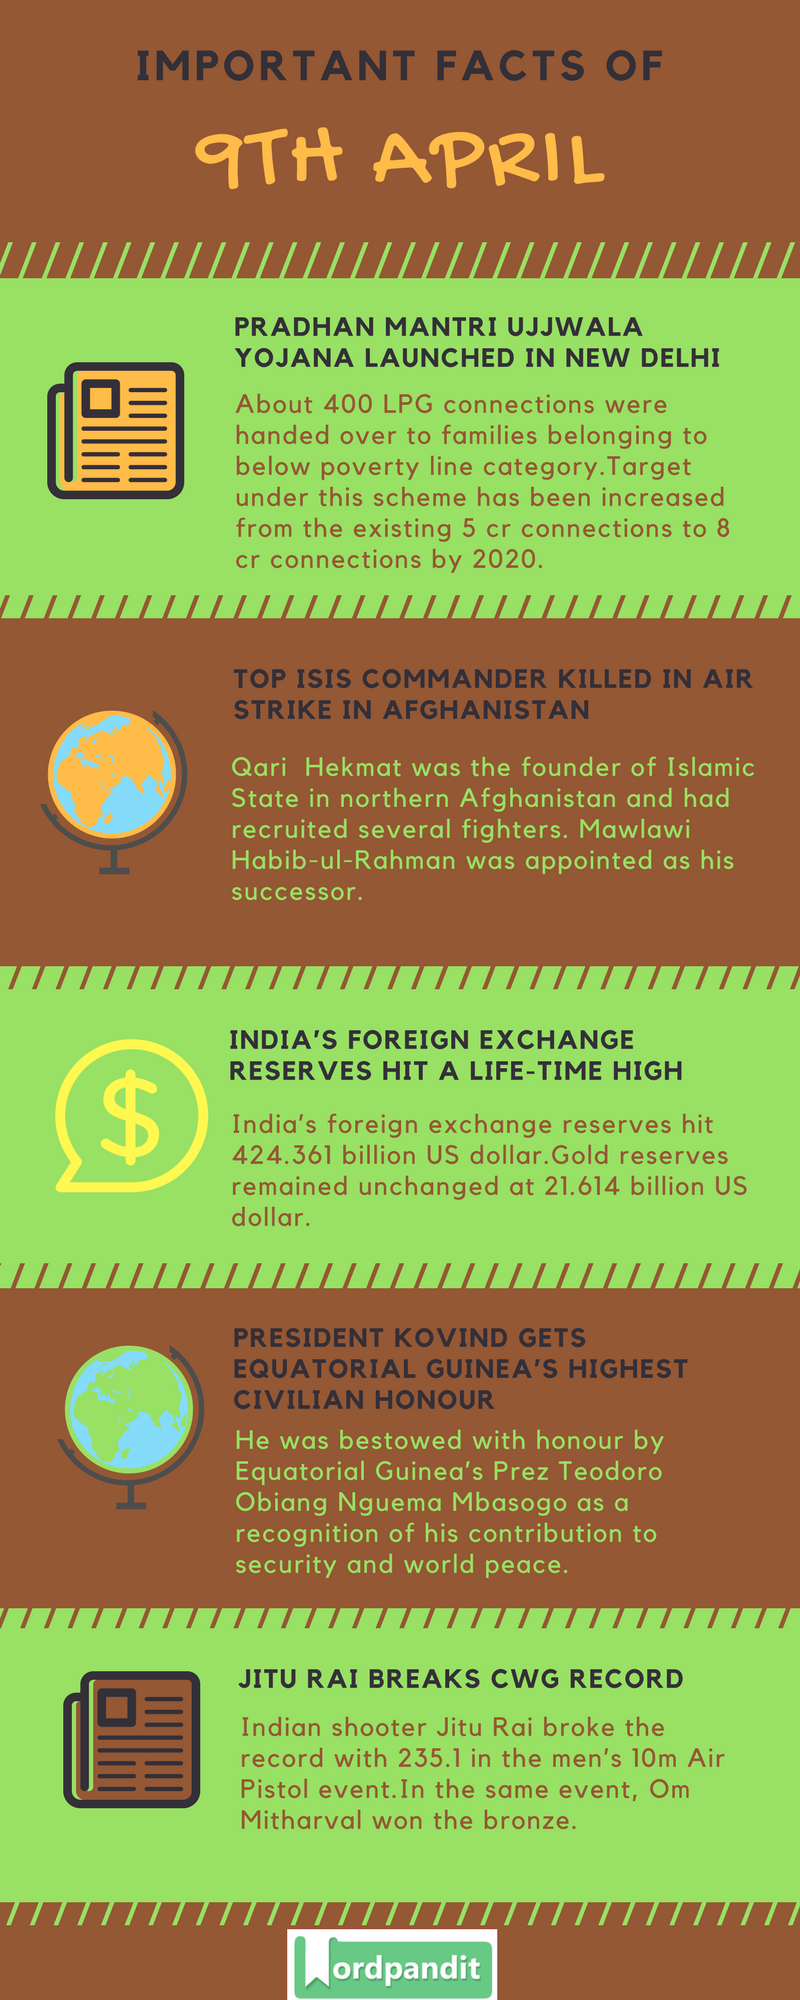 Daily Current Affairs 9 April 2018 Current Affairs Quiz April 9 2018 Current Affairs Infographic